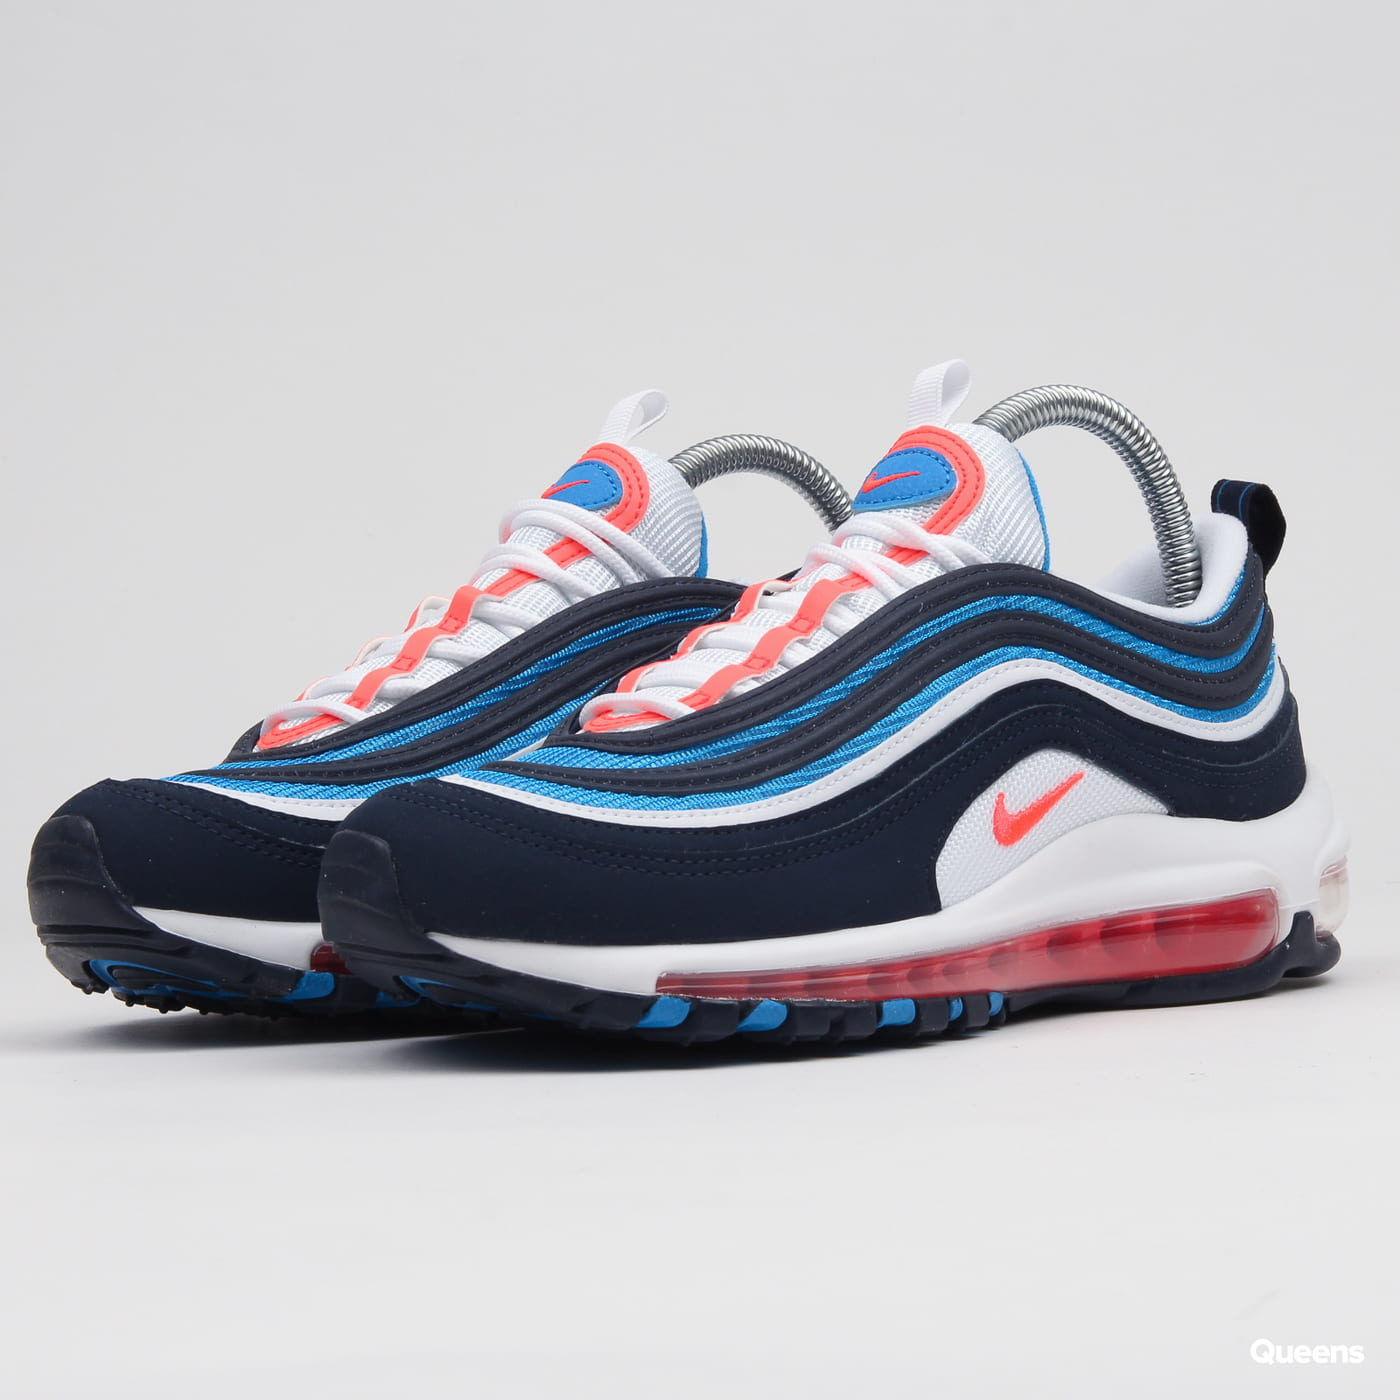 Nike Air Max 97 BG white bright crimson obsidian